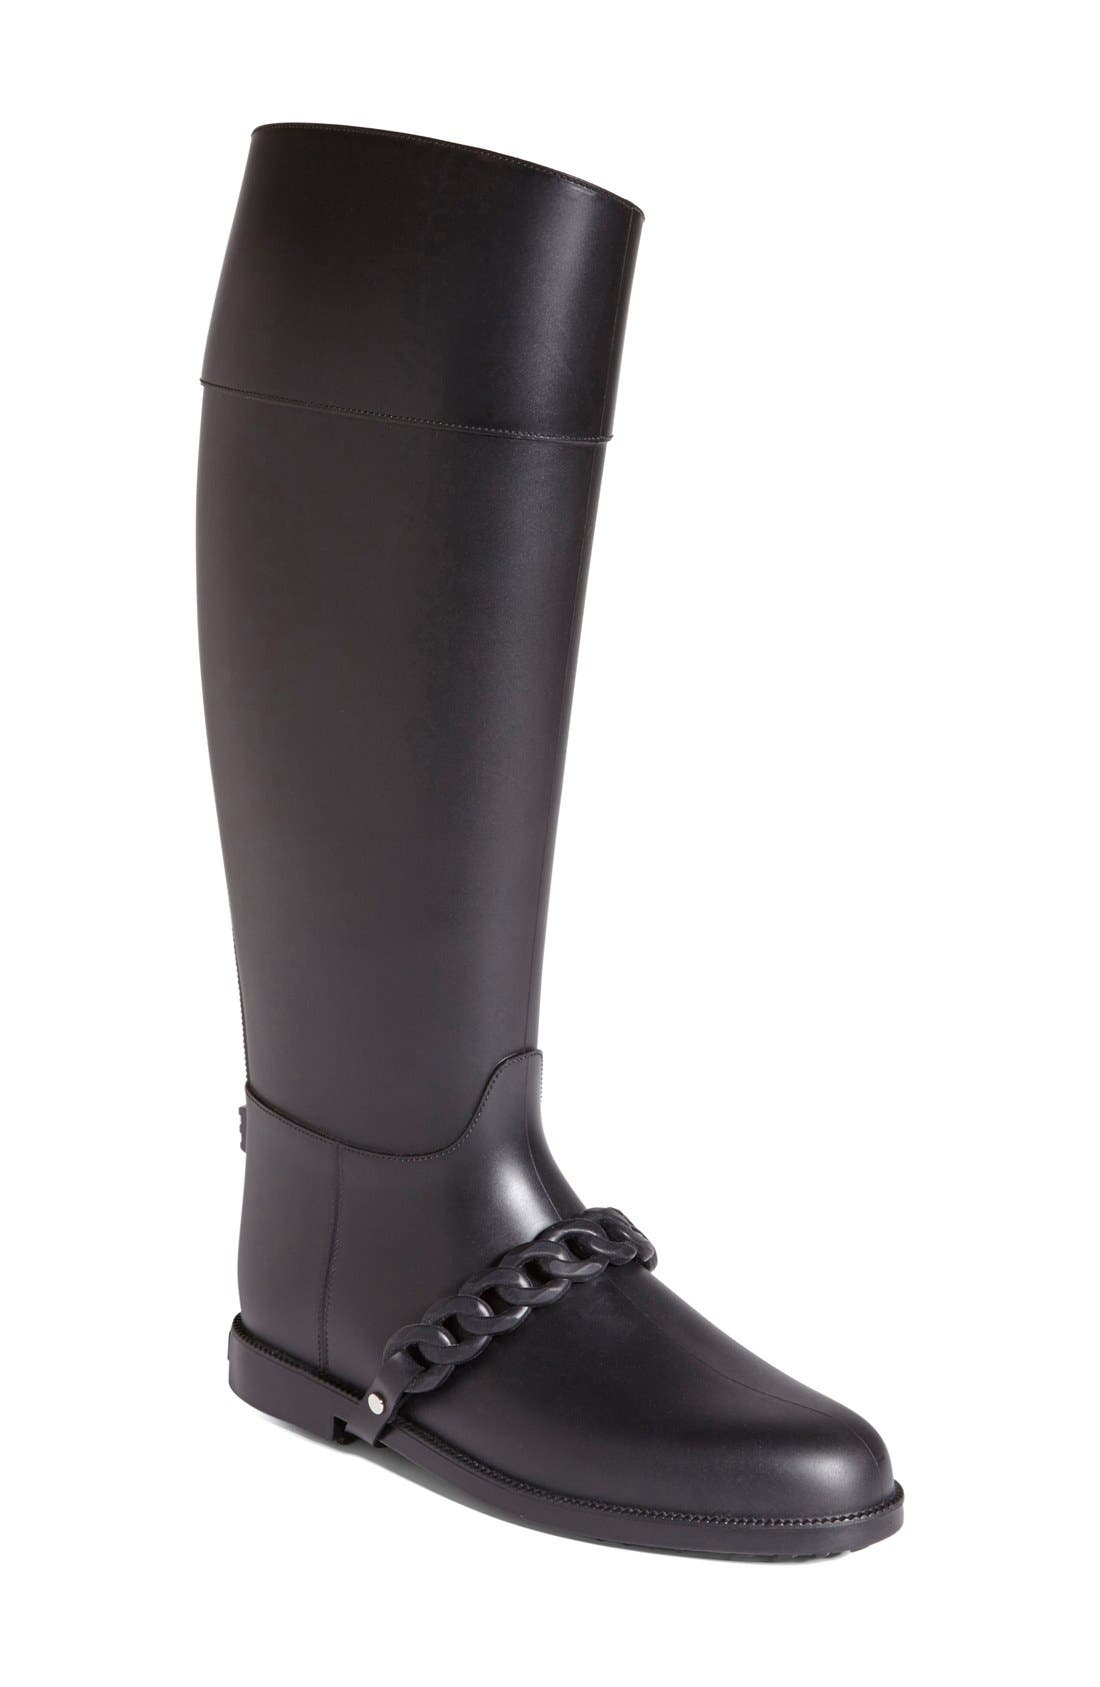 Main Image - Givenchy 'Eva Chain' Tall Rain Boot (Women)